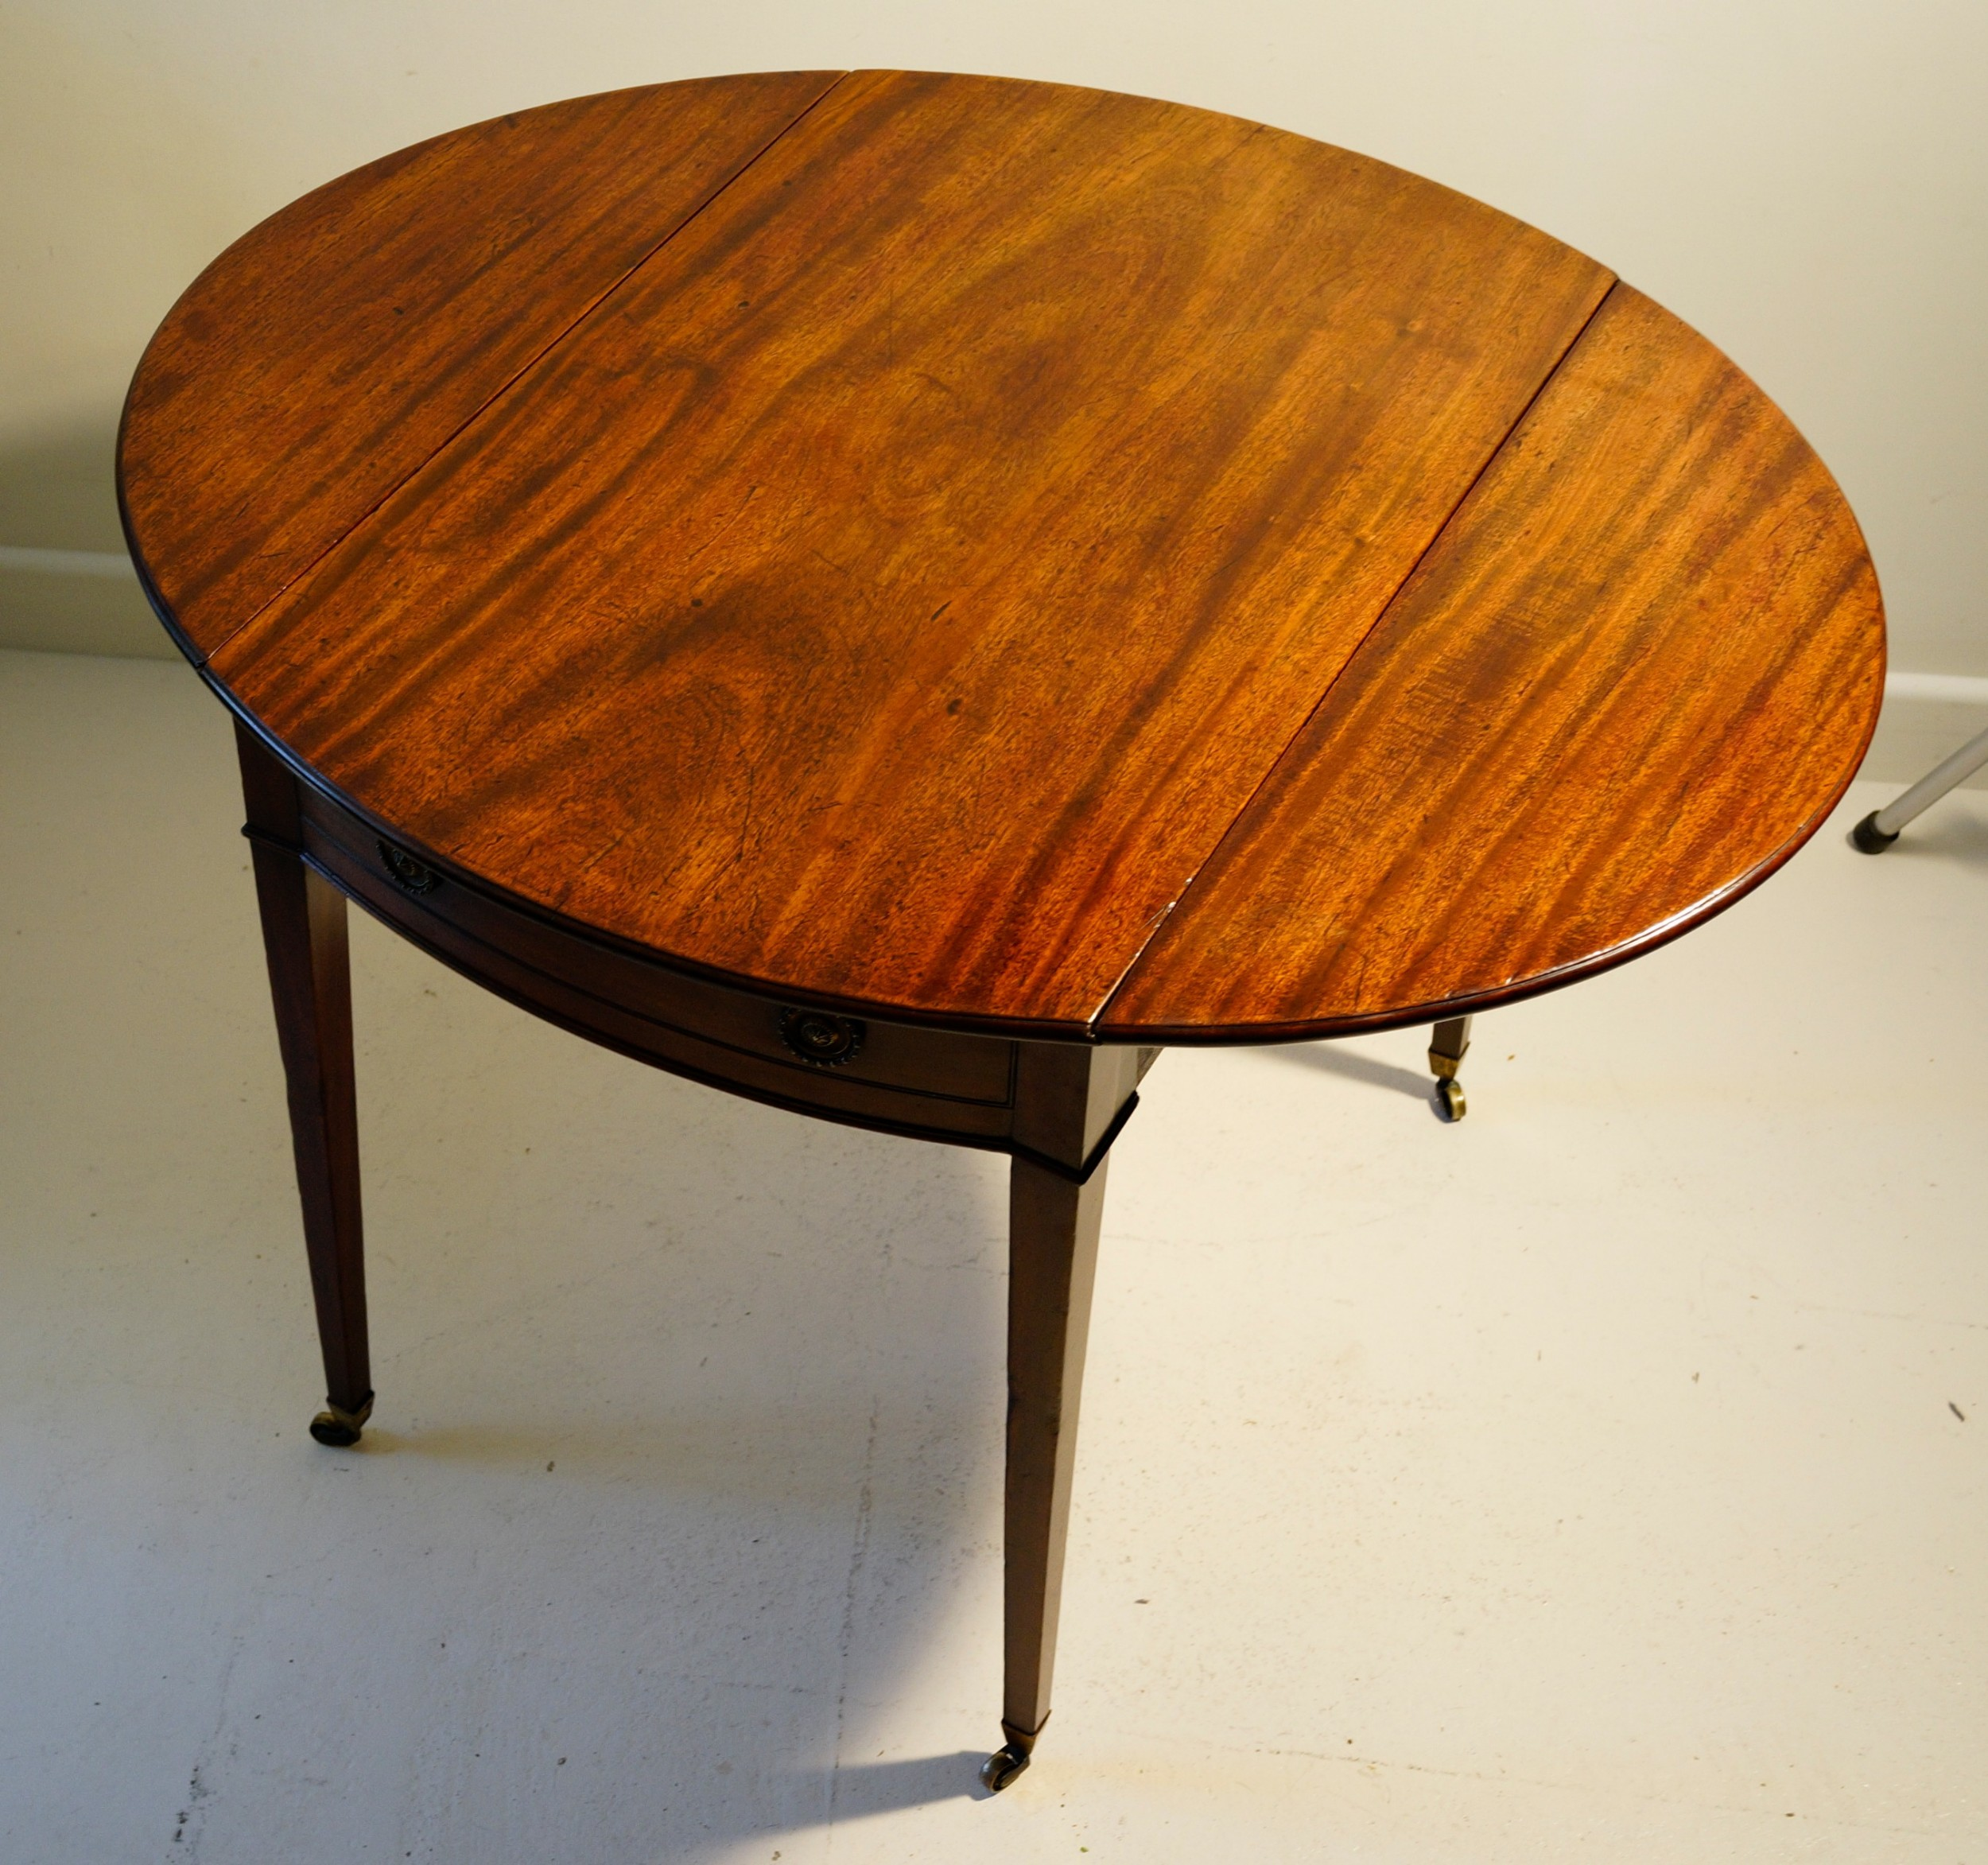 fine 1780s georgian mahogany oval pembroke table in lovely original condition